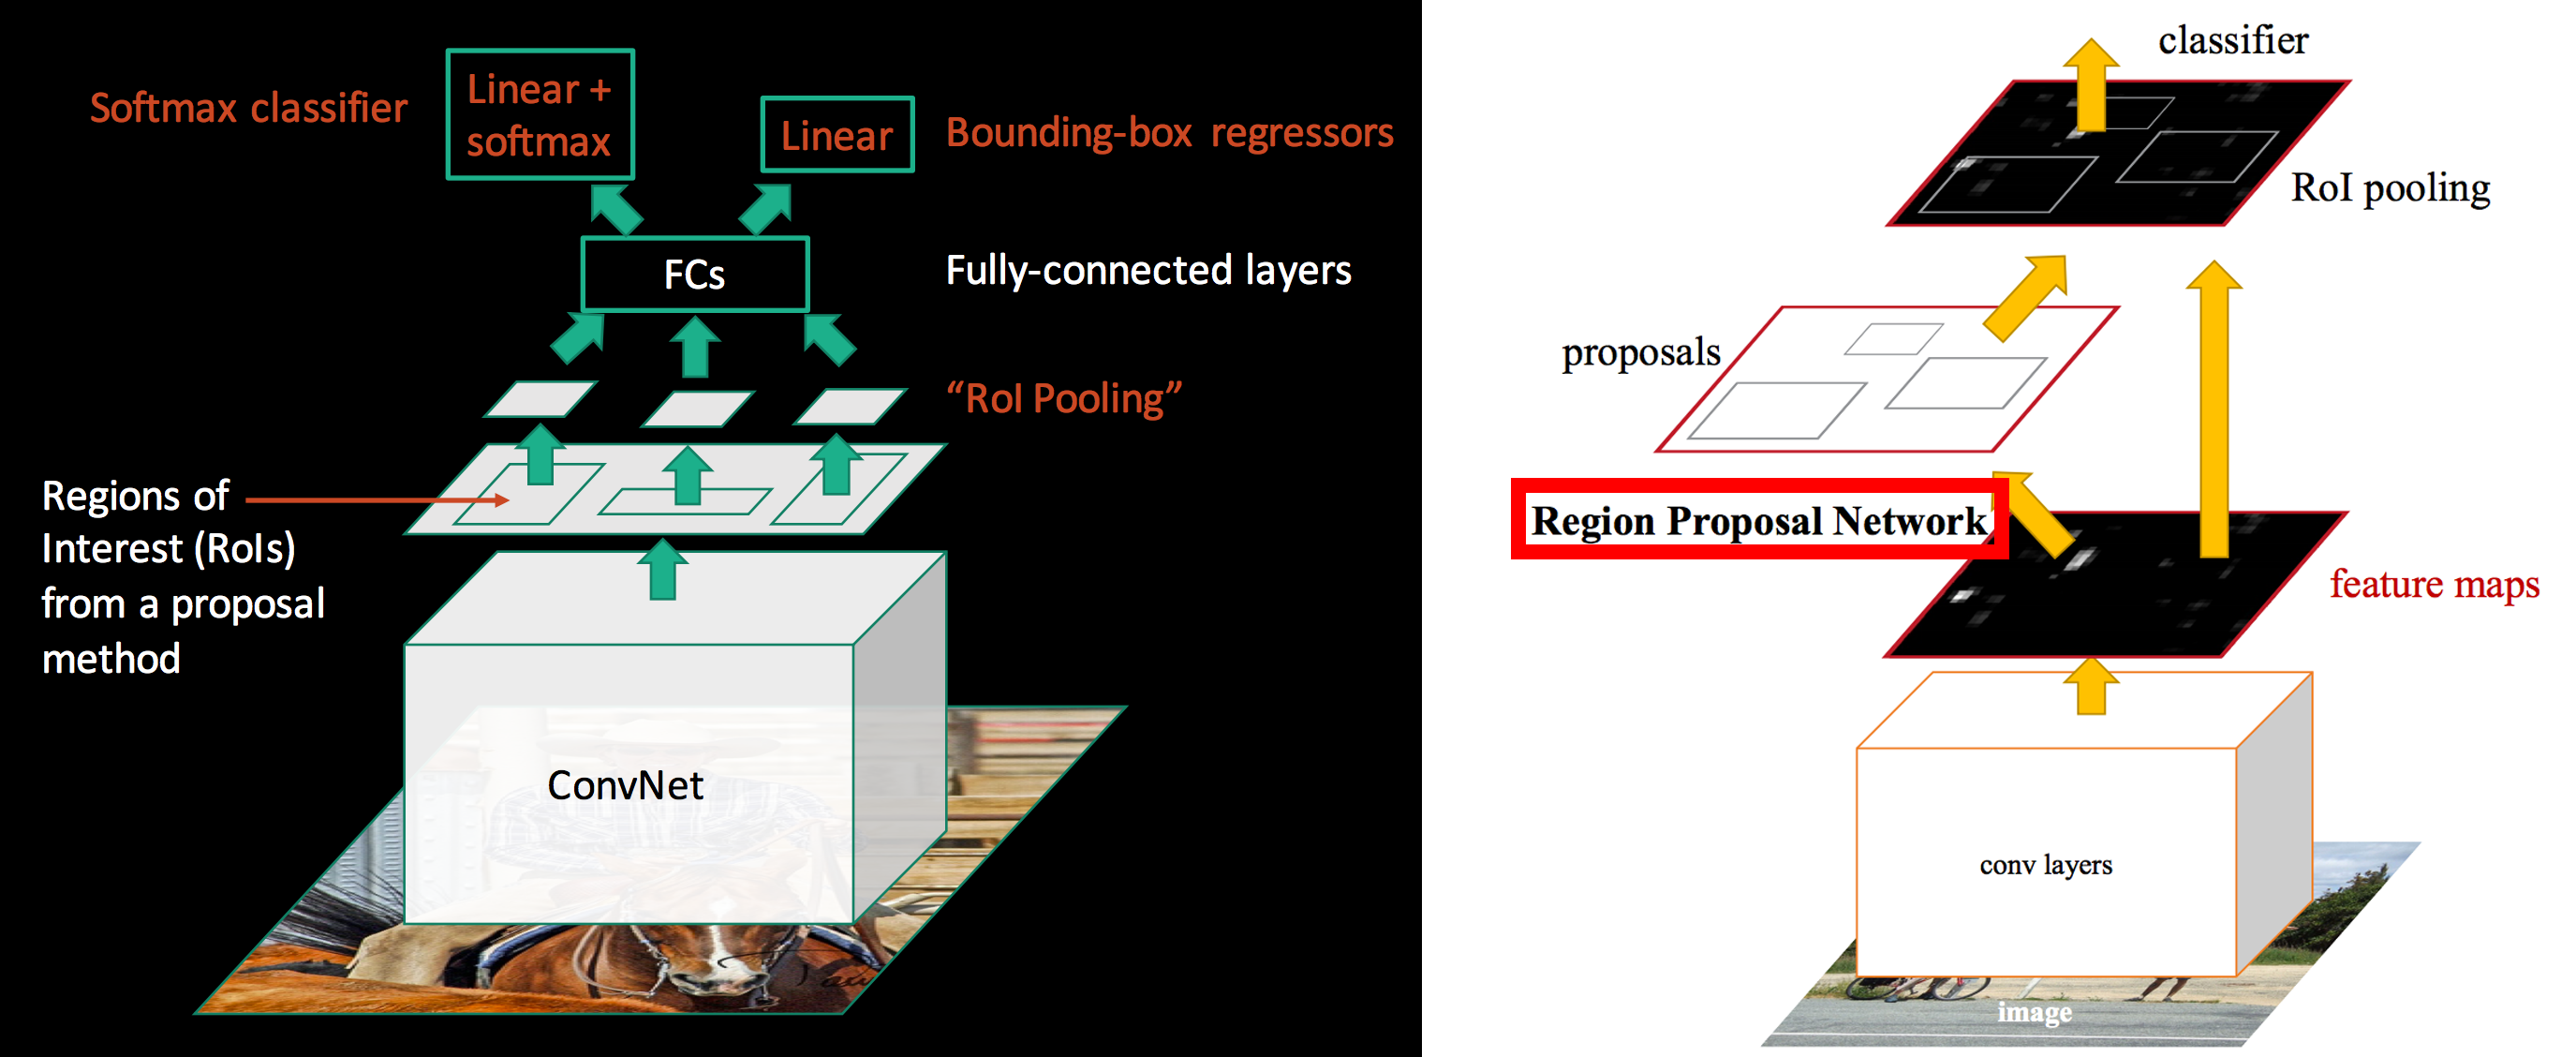 Using Object Detection for Complex Image Classification